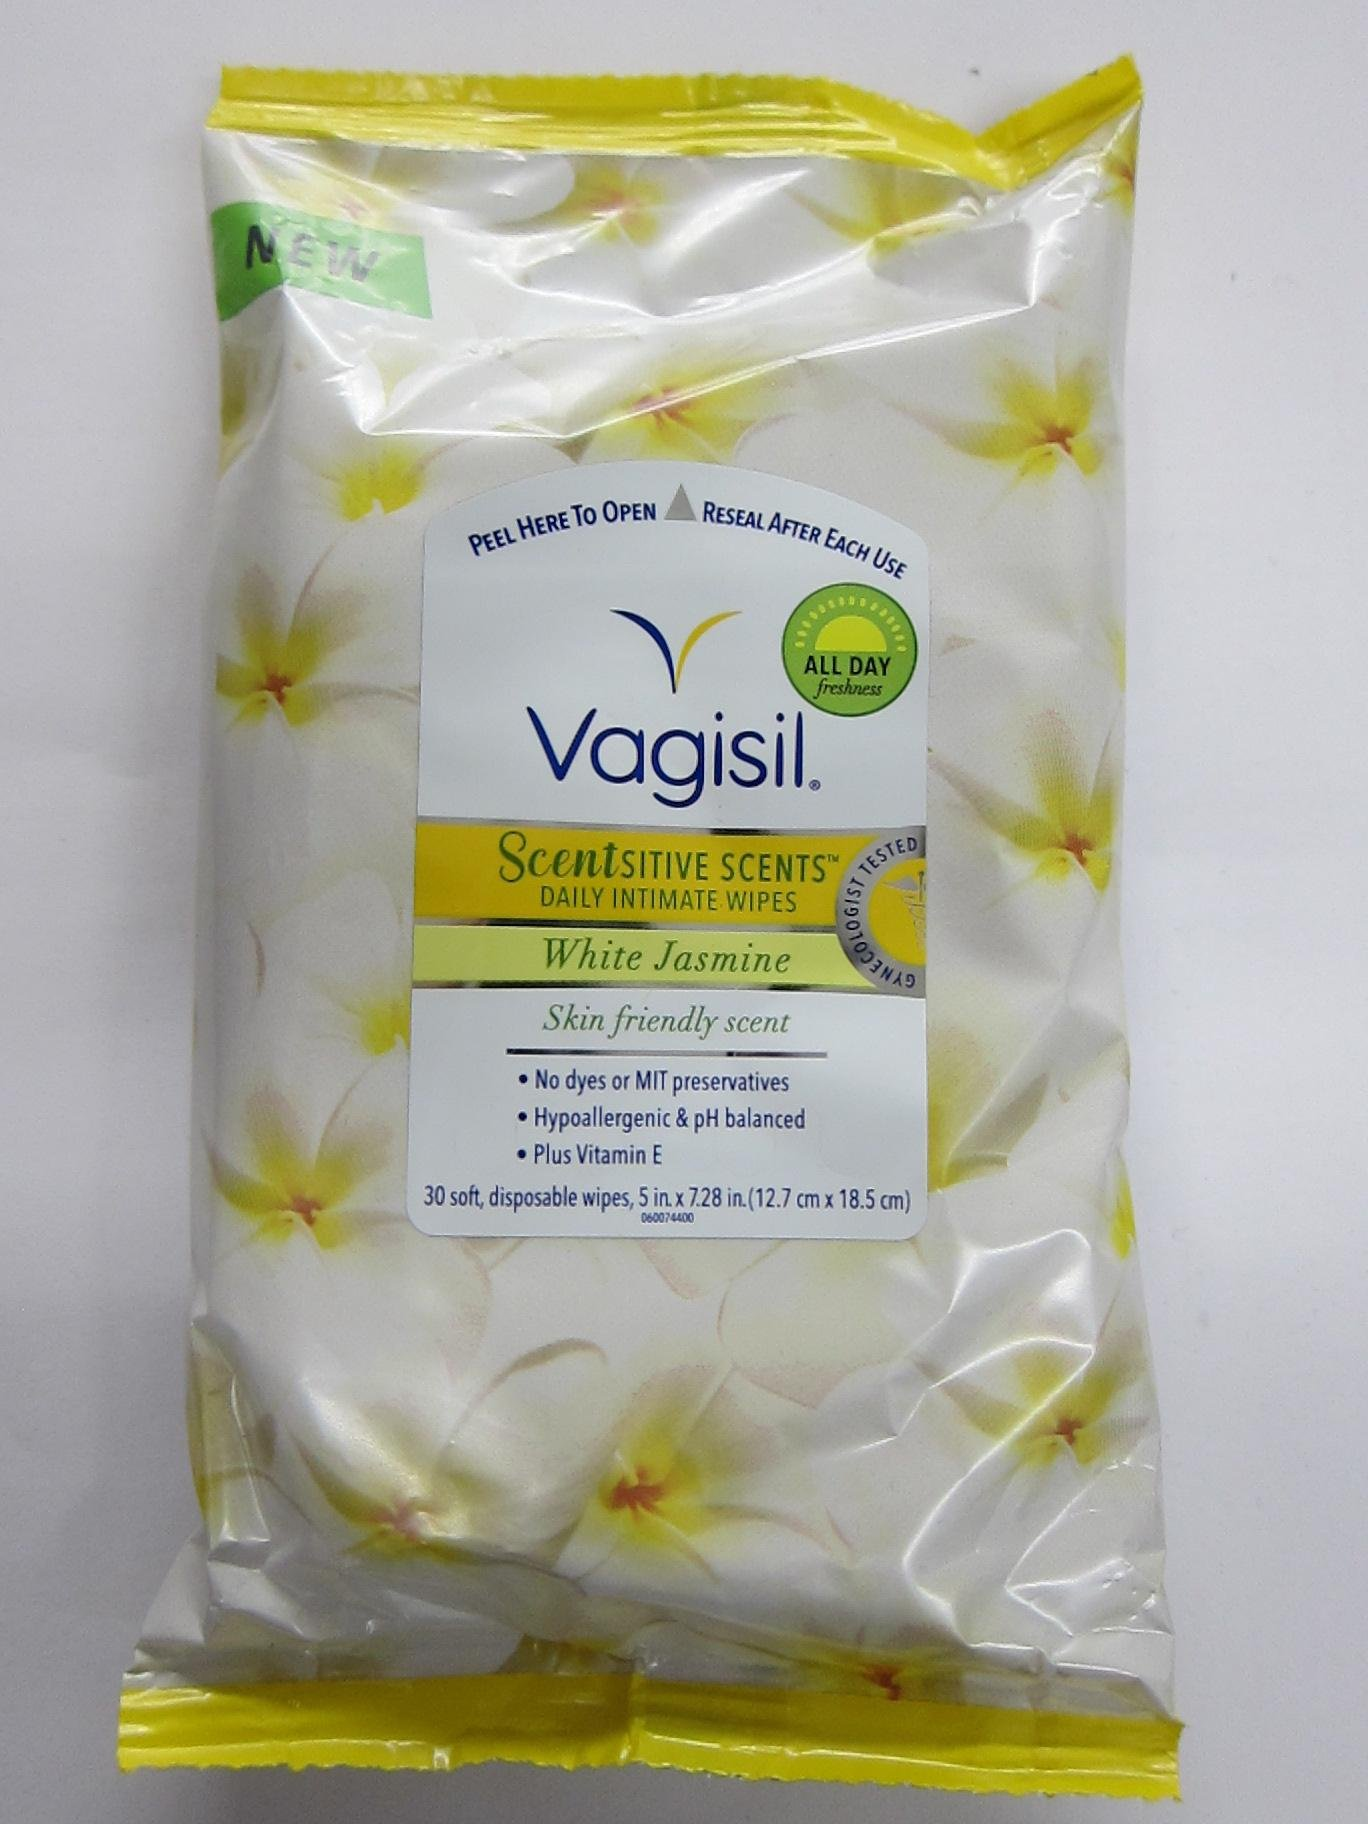 Vagisil Scentsitive Scents Daily Intimate Wipes, White Jasmine, 30 Wipes (Pack of 2)